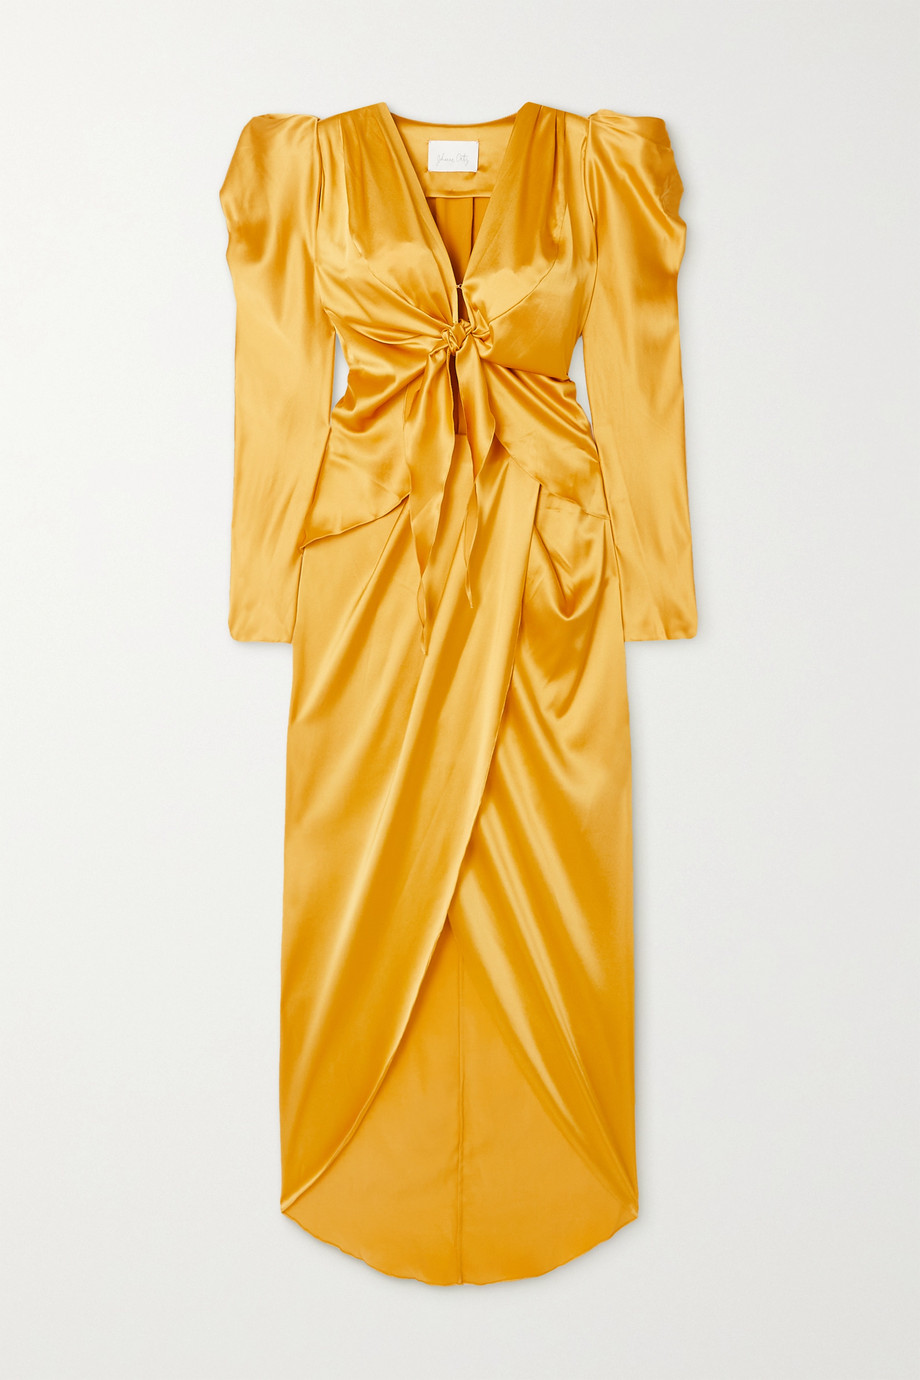 Johanna Ortiz + NET SUSTAIN Carnaval Dancer tie-front silk-blend satin dress